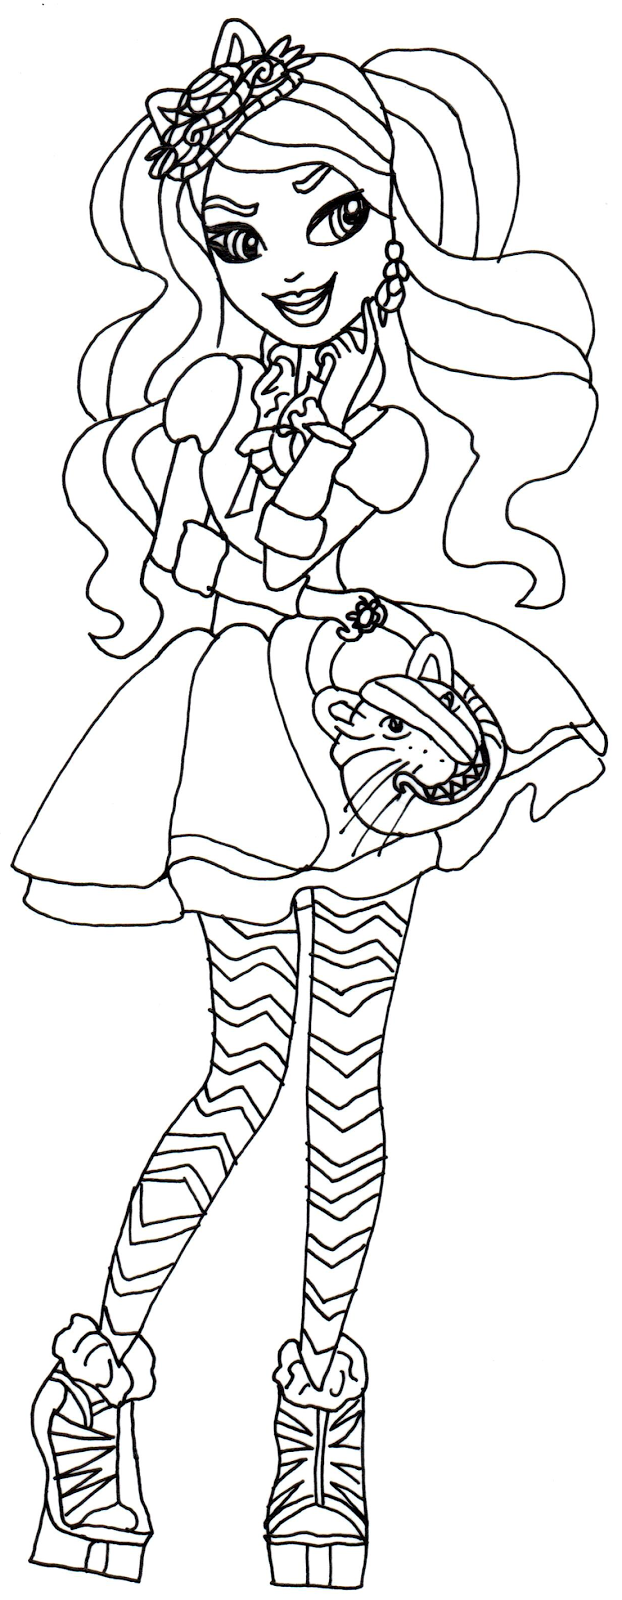 Ever after high coloring pictures - Ever After High Coloring Pages